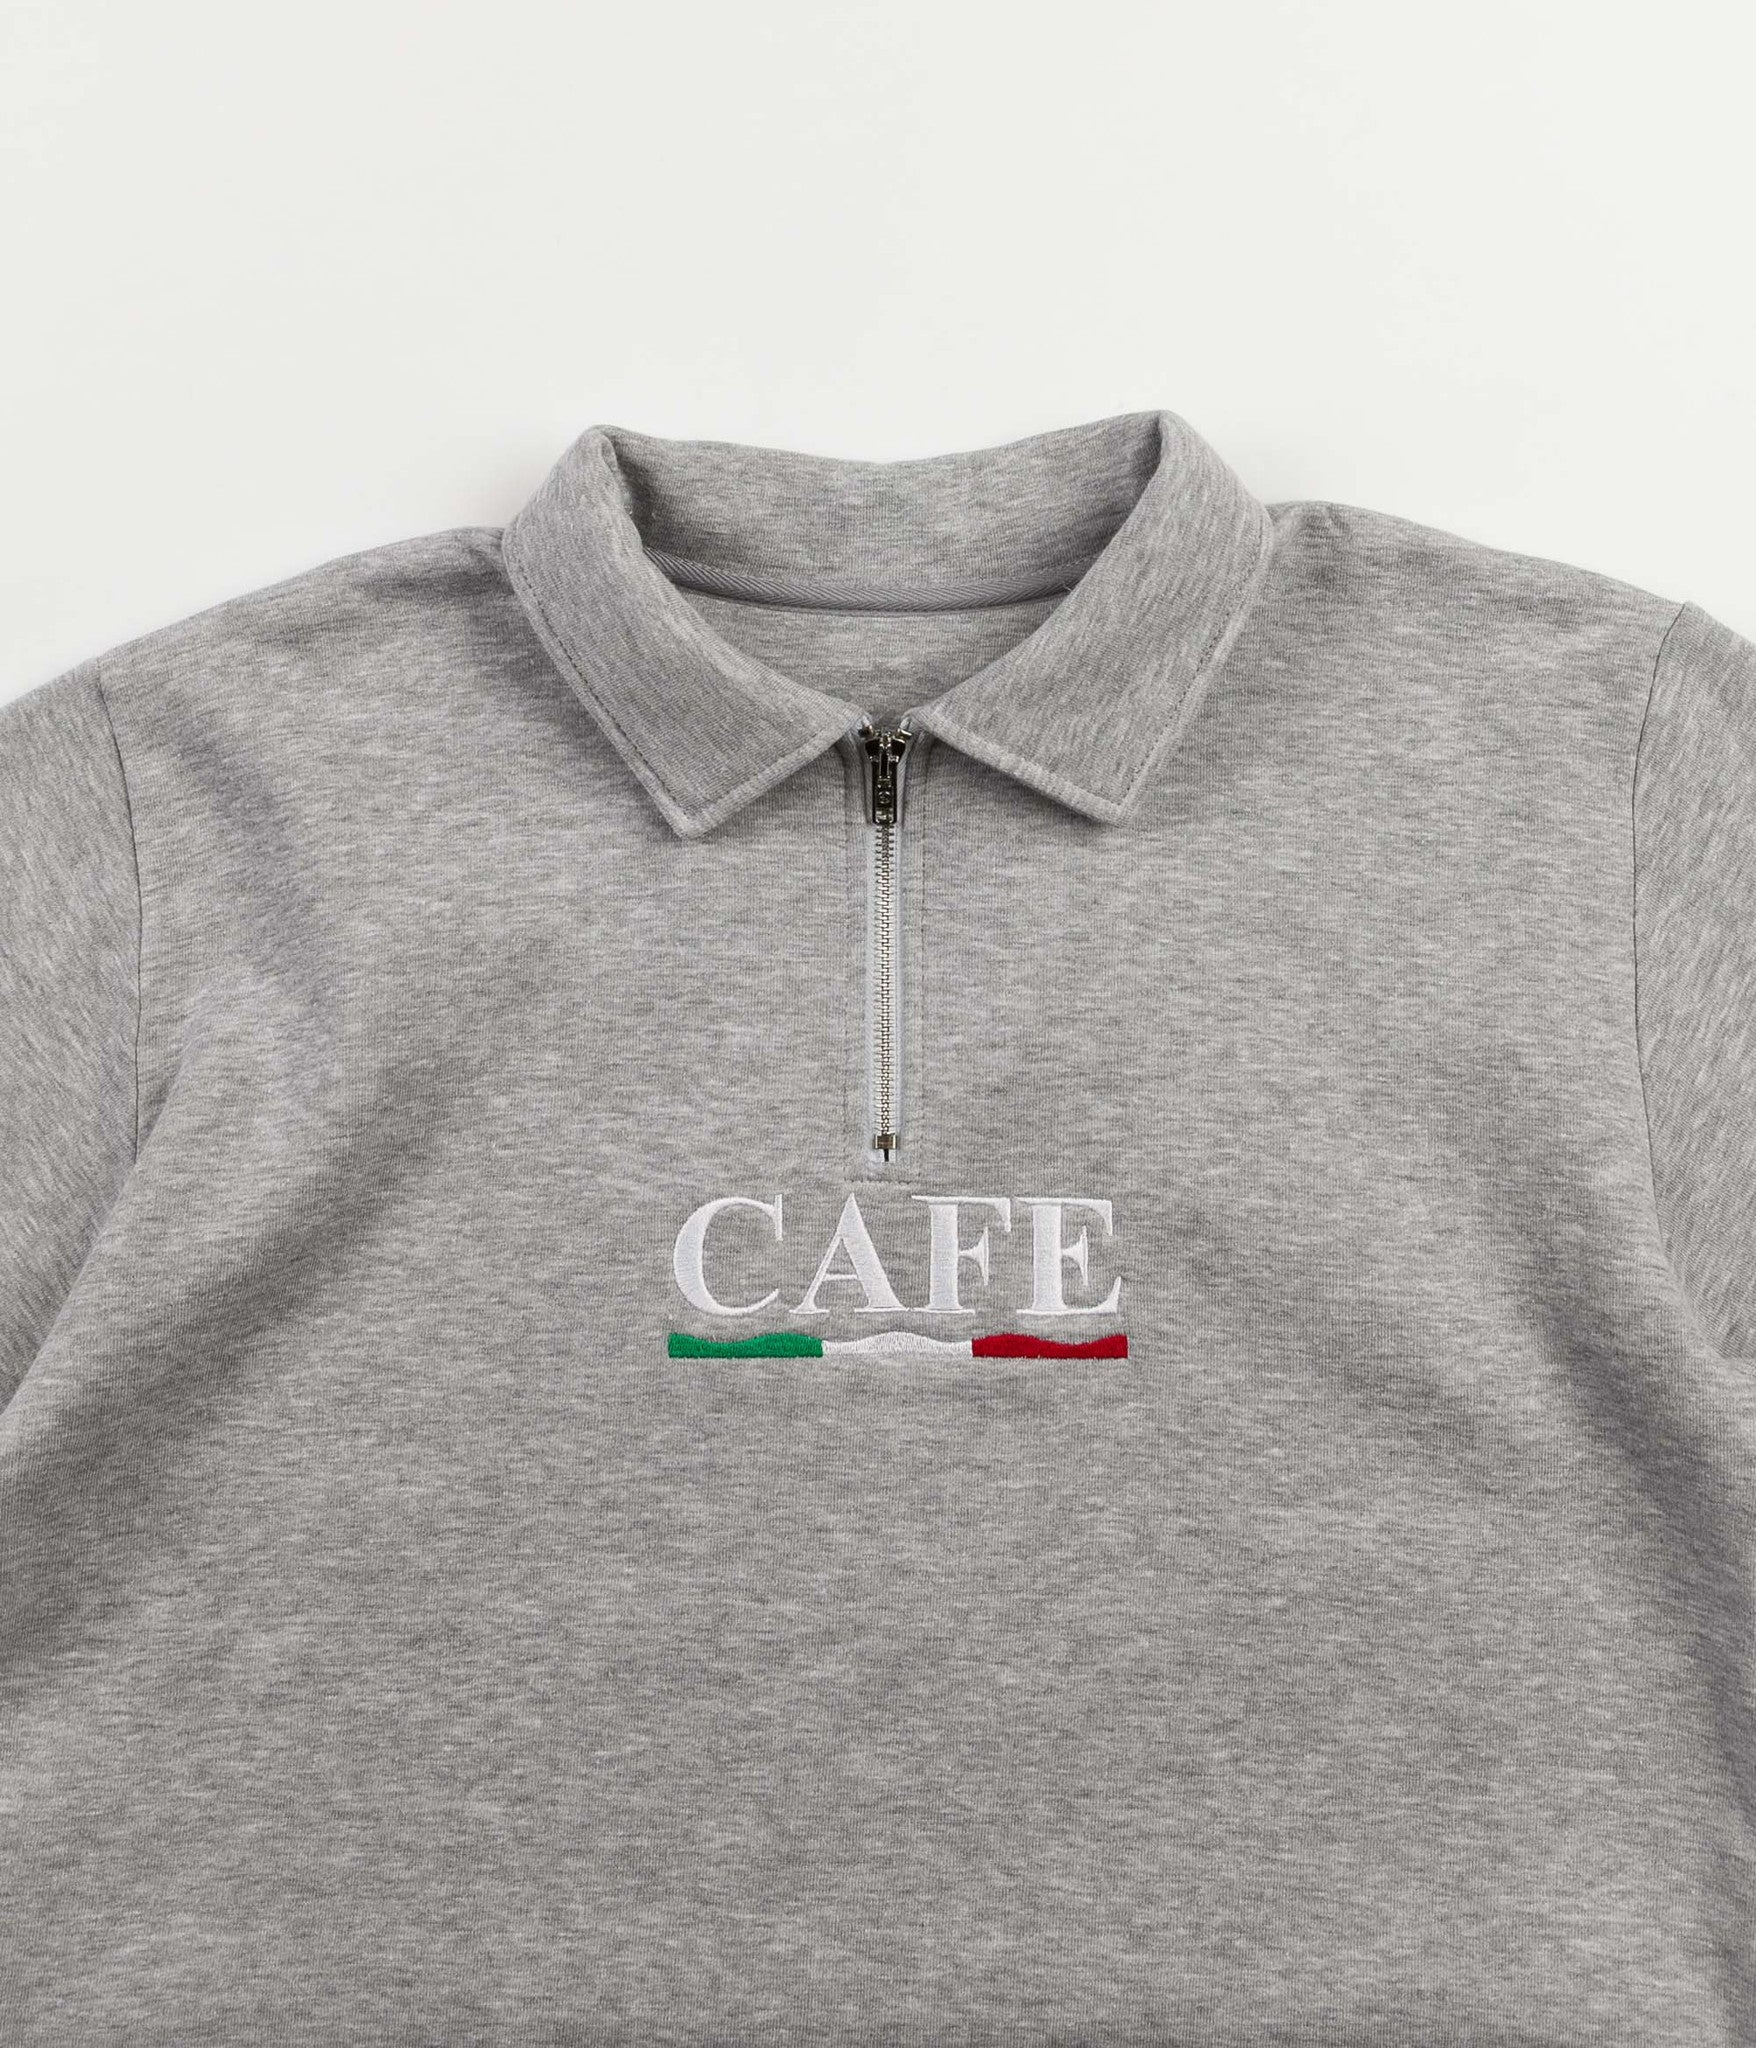 Skateboard Cafe Latte 1/4 Zip Sweatshirt - Grey / Latte